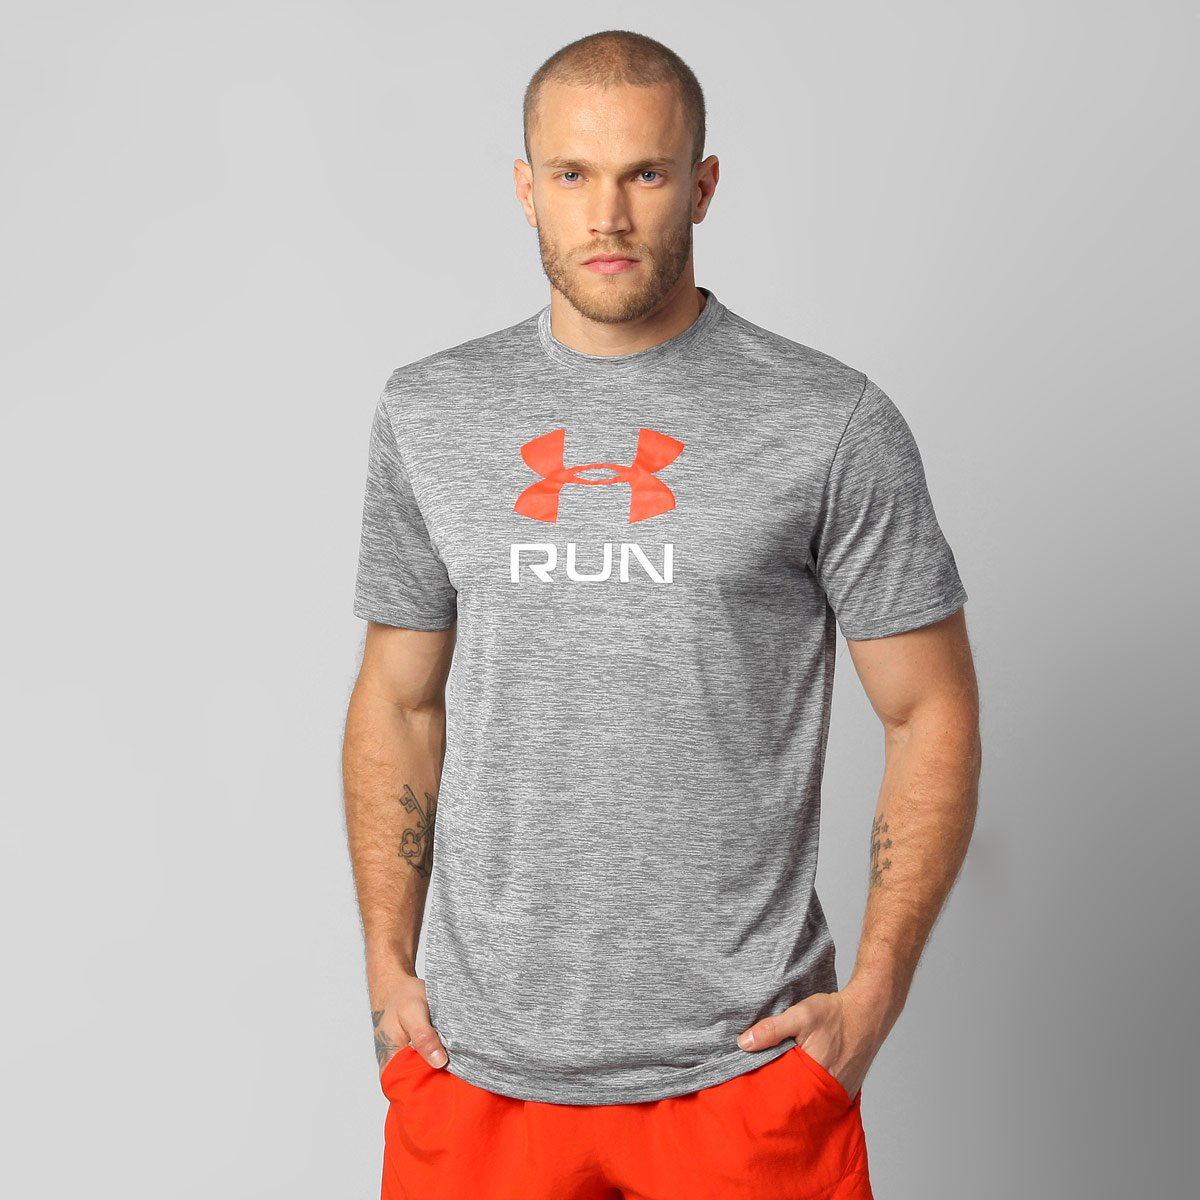 b53474c2f318b Camiseta Under Armour Run Big Twist Graphic - Compre Agora